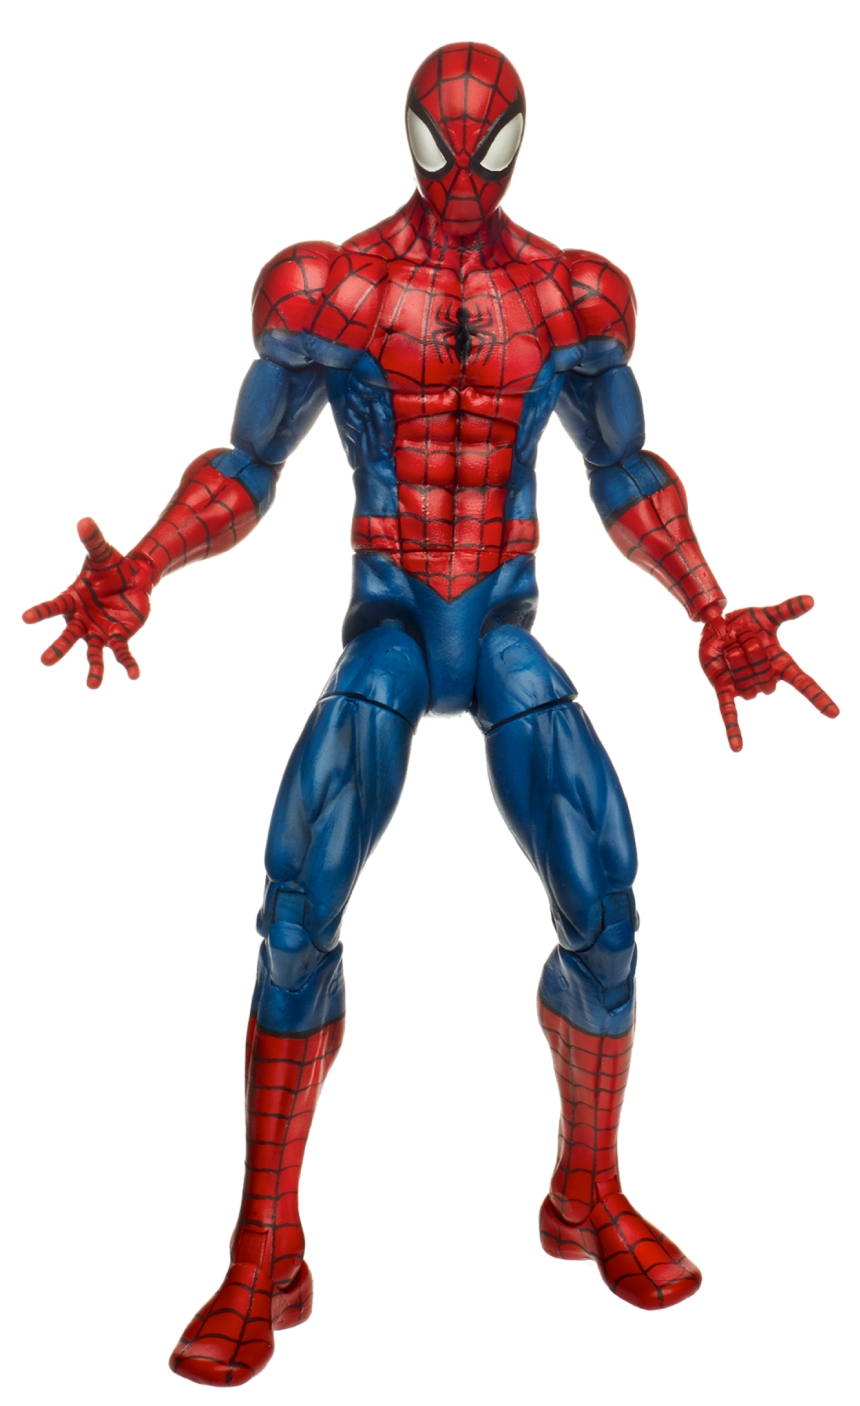 SpiderManLegends-wave1-Spider-Man